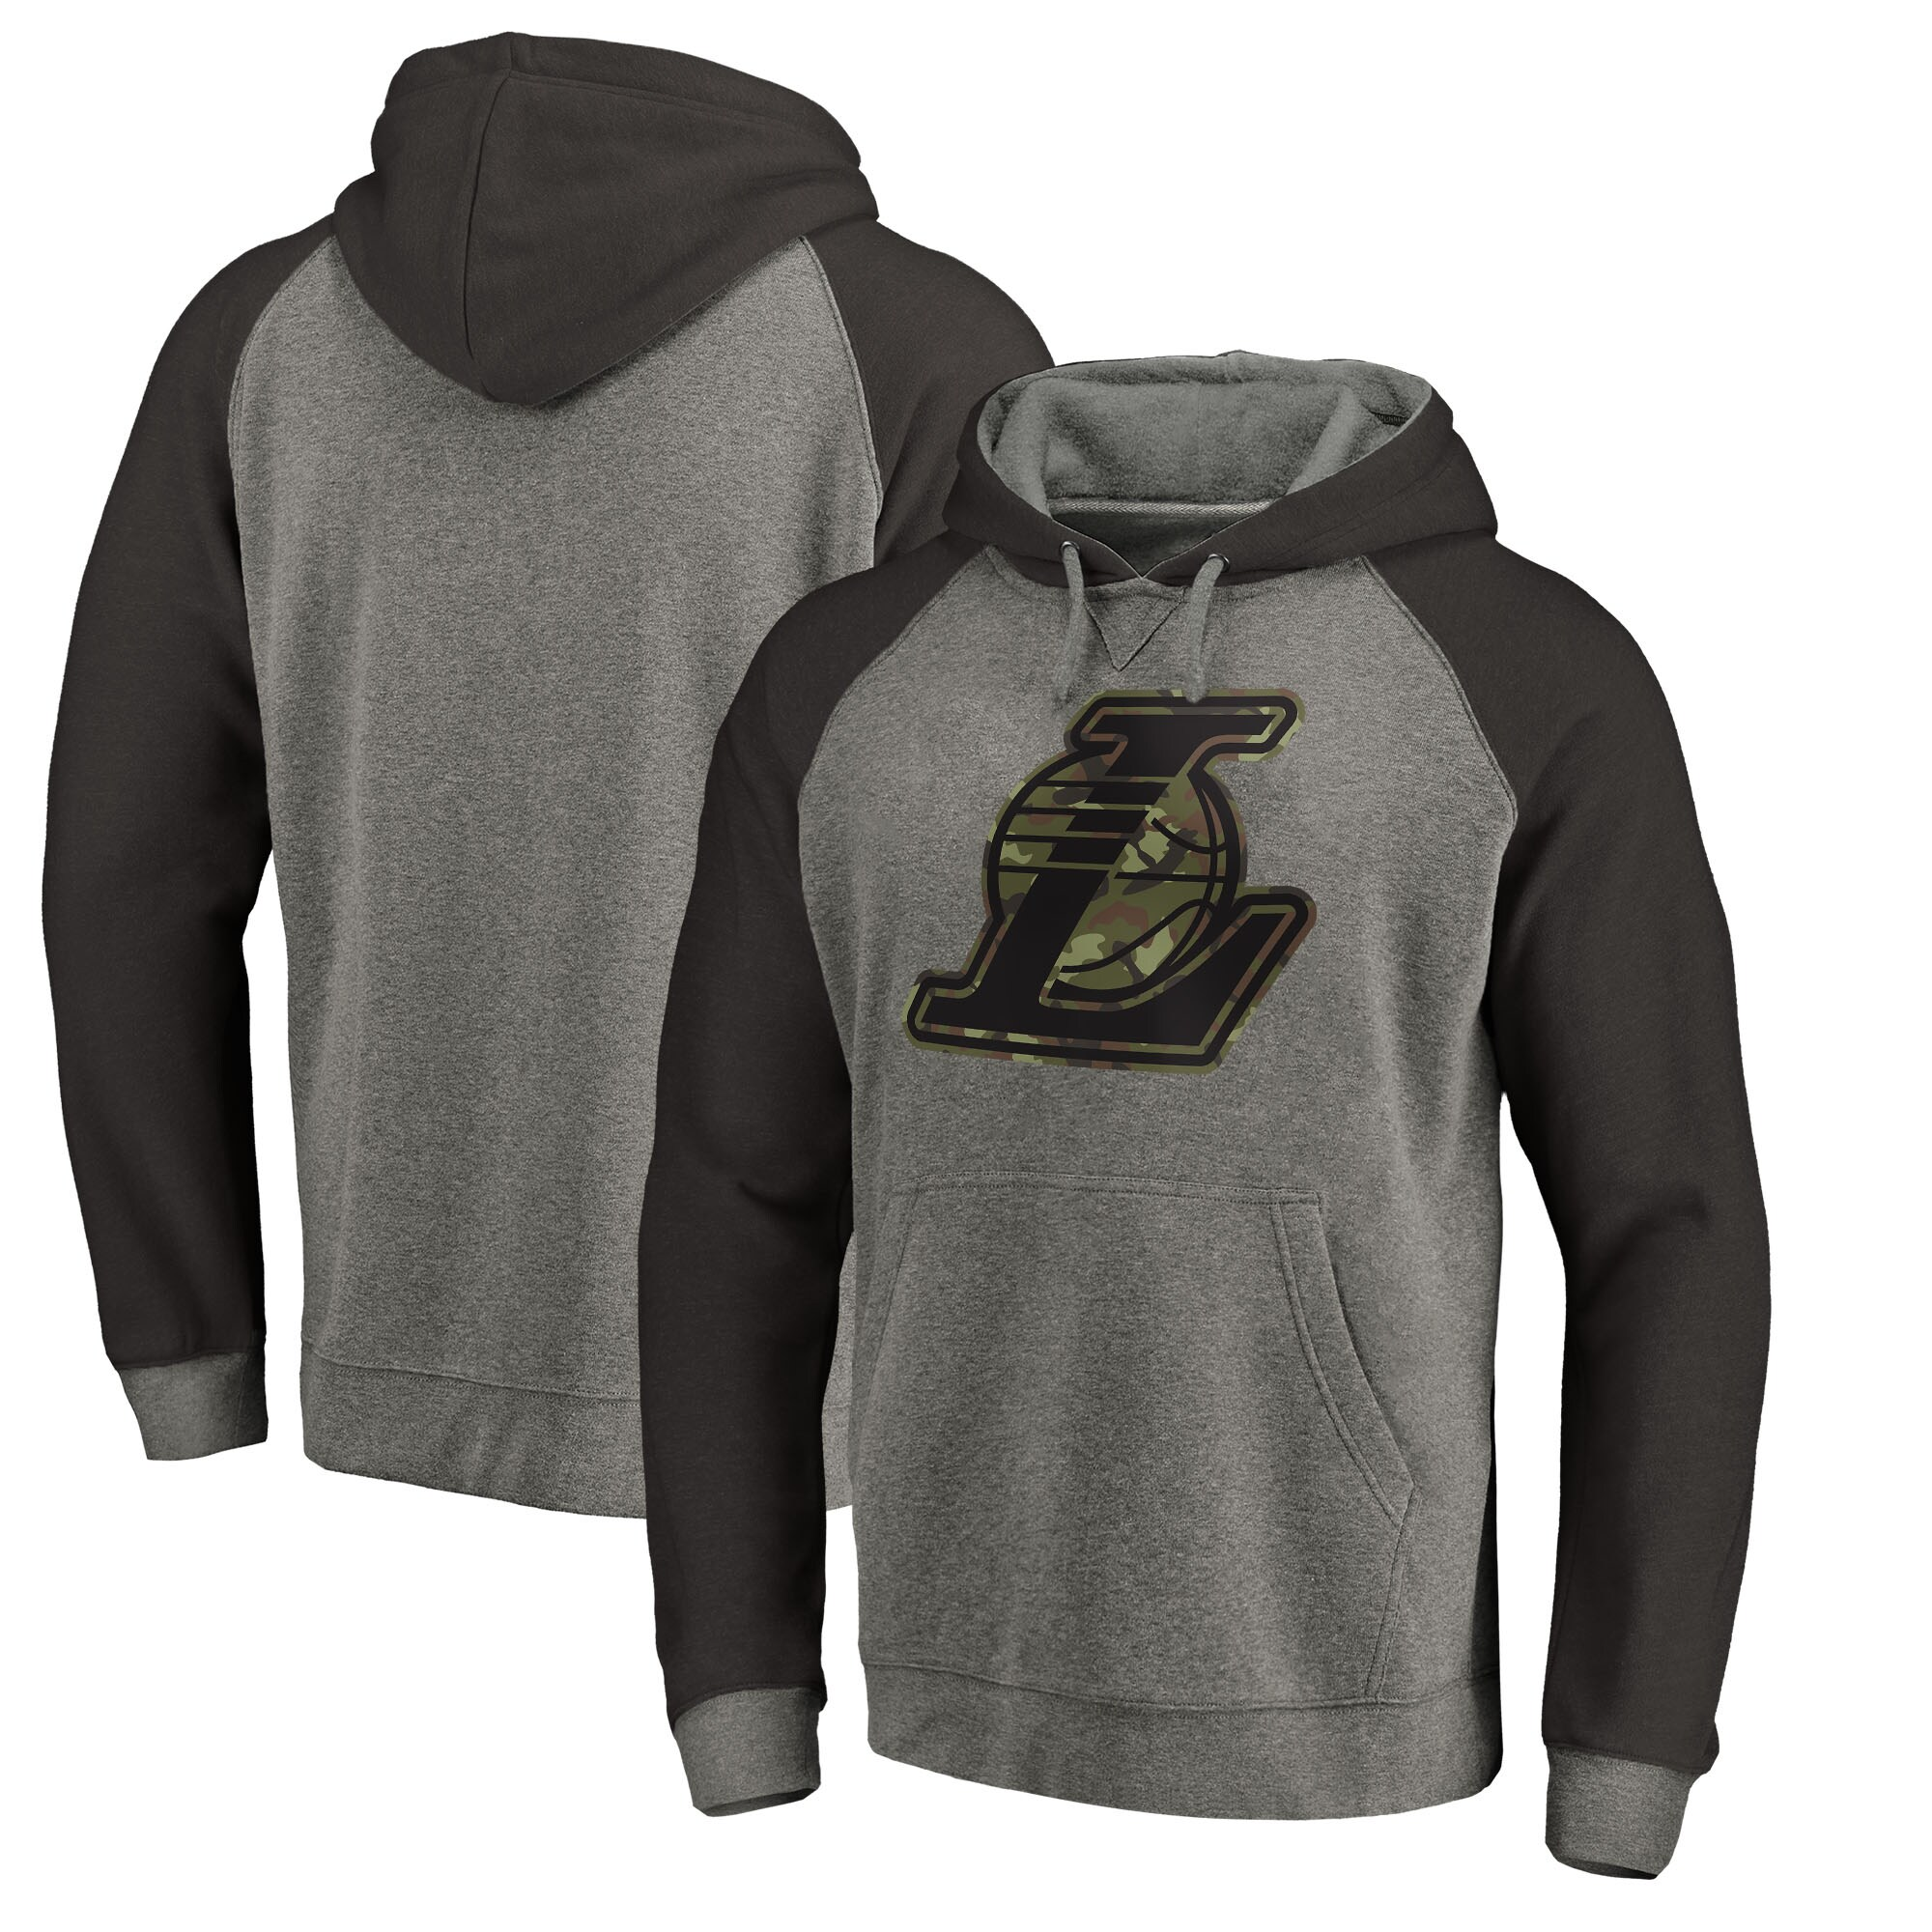 Los Angeles Lakers Fanatics Branded Prestige Camo Tri-Blend Pullover Hoodie - Heathered Gray